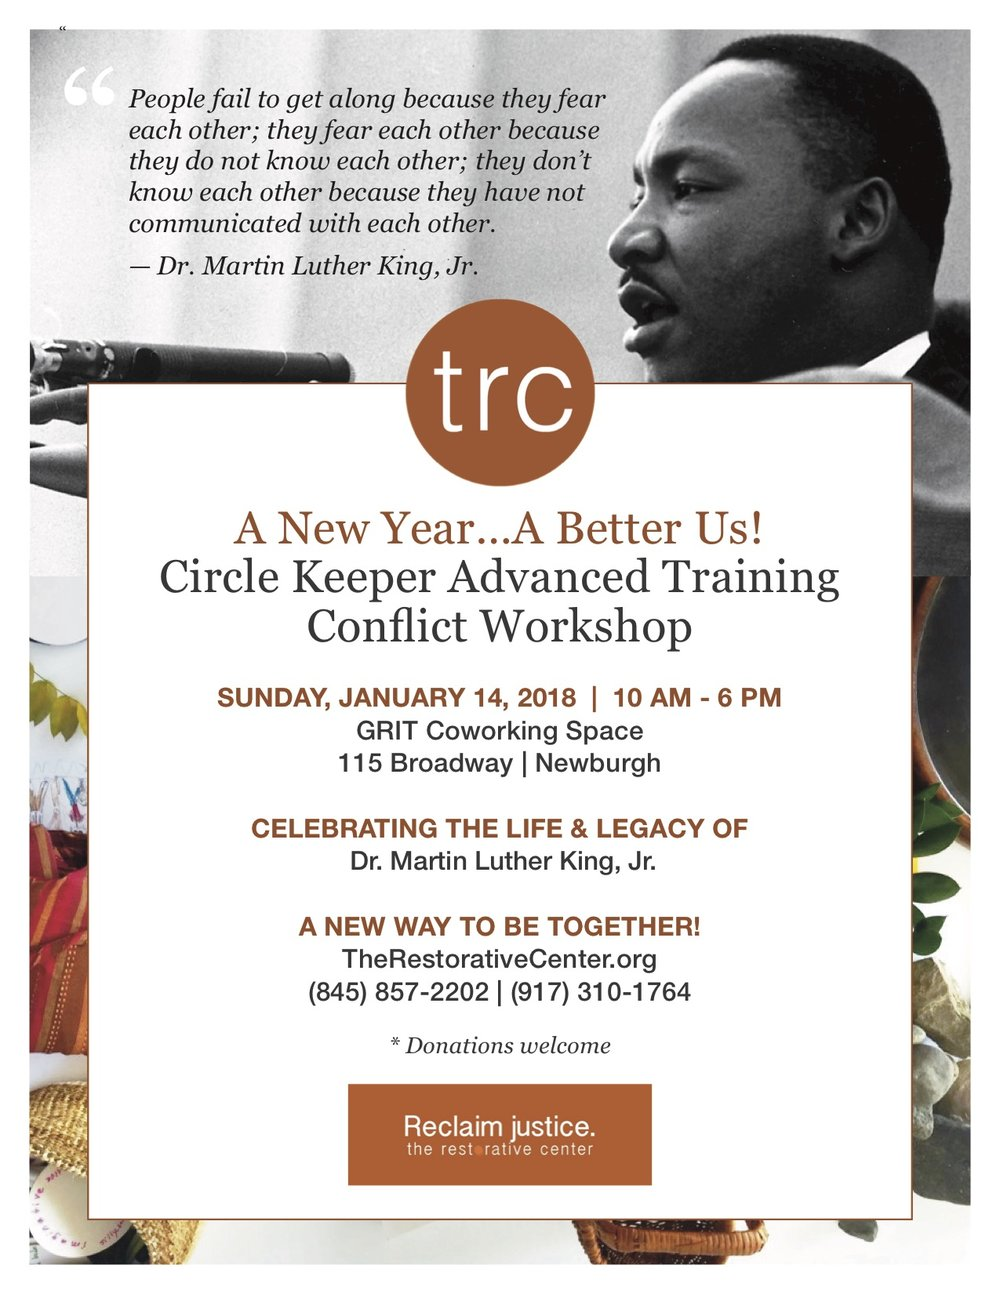 TRC_MLK_Conflict_Training_11417_final.jpg